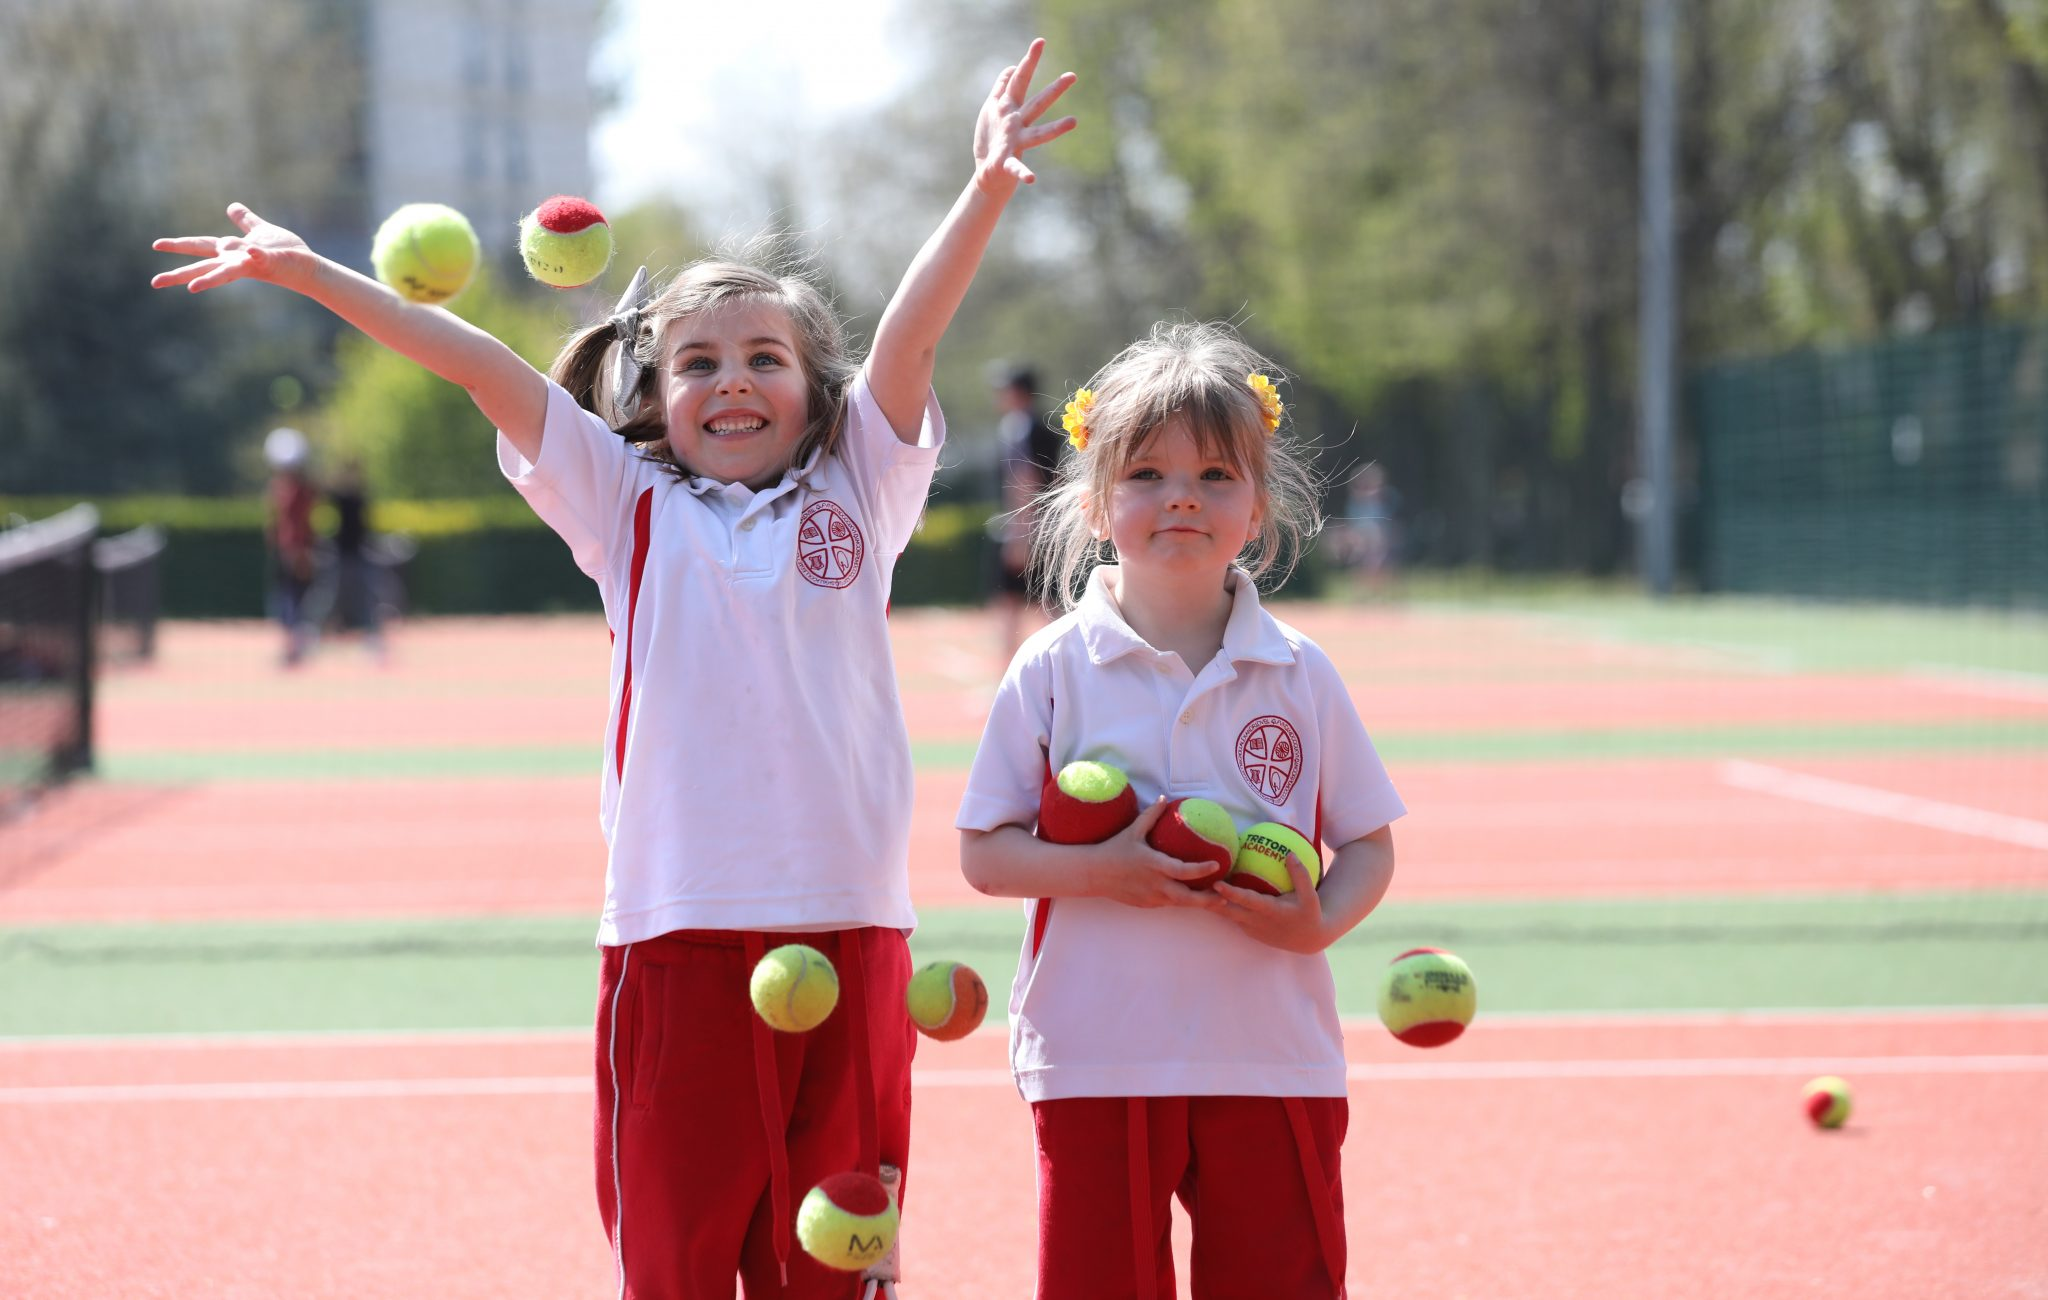 Four-year-olds Lily Ranalow and Margaret Darcy playing tennis at Herbert Park council playgrounds